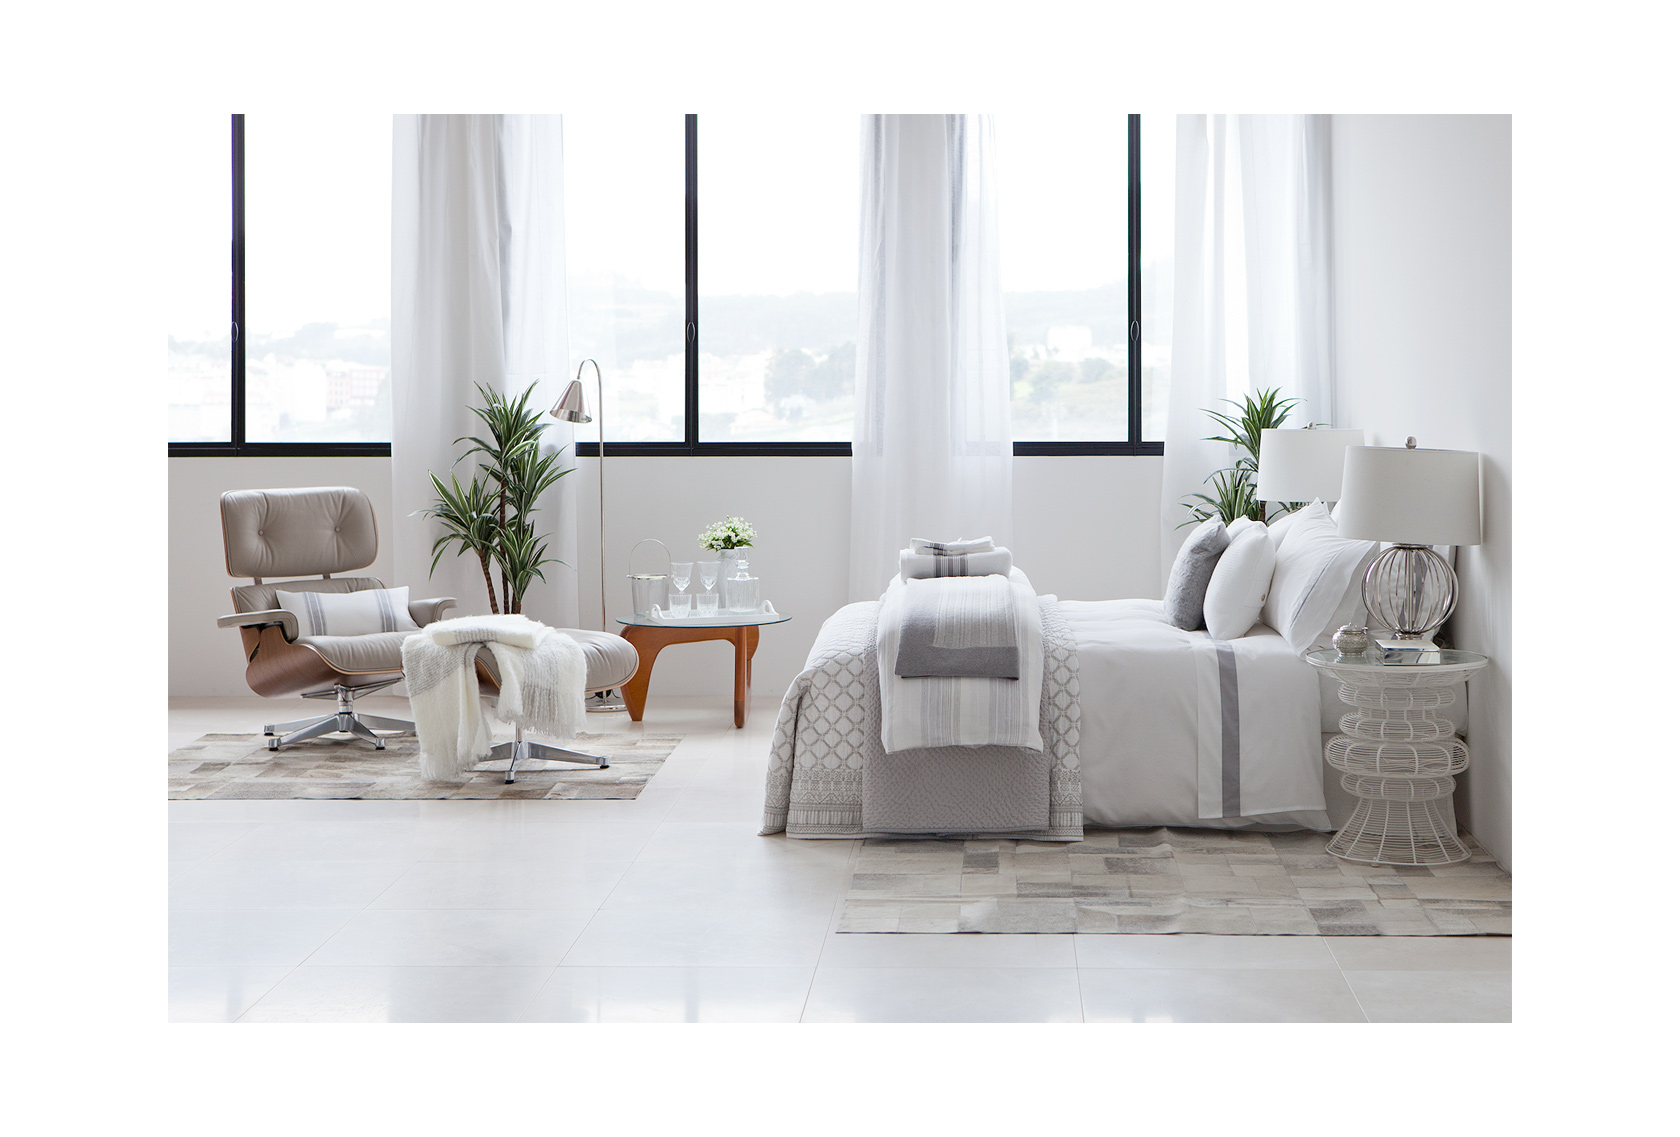 zara home, interior design, white, fresh, breezy, styling, alivingdiary.co.uk